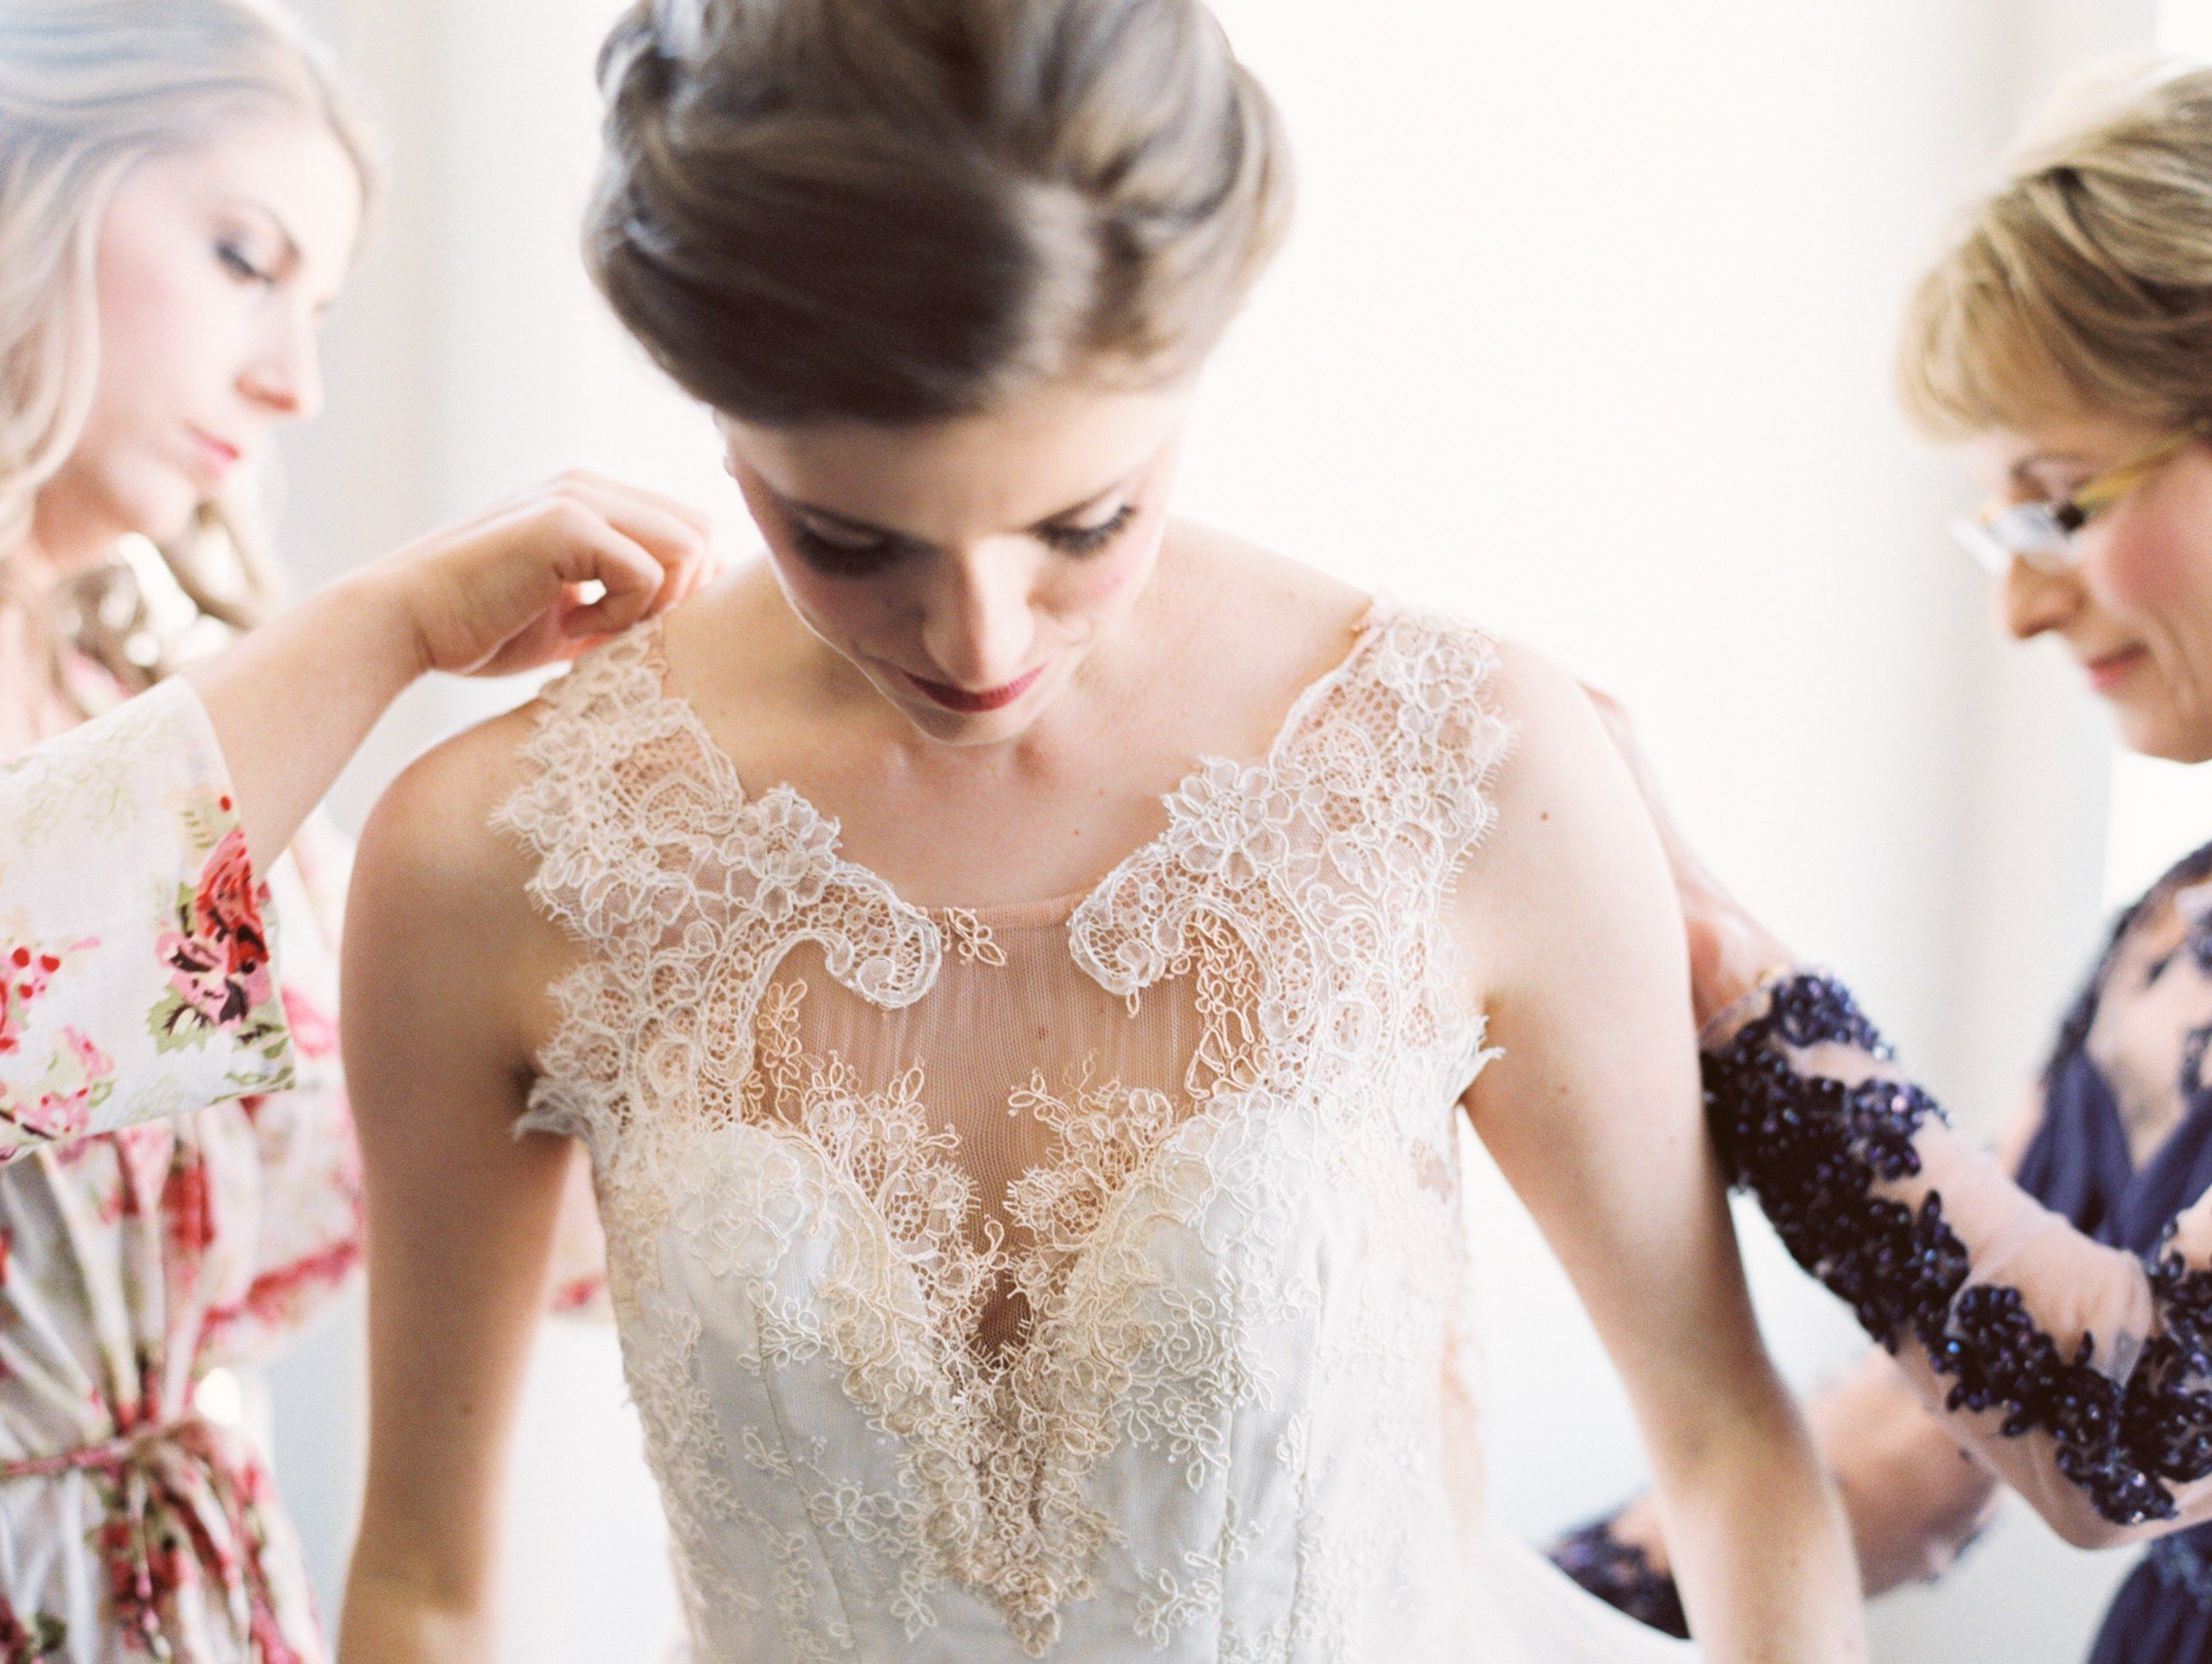 How to Choose Your Dream Wedding Dress: 6 Things to Know